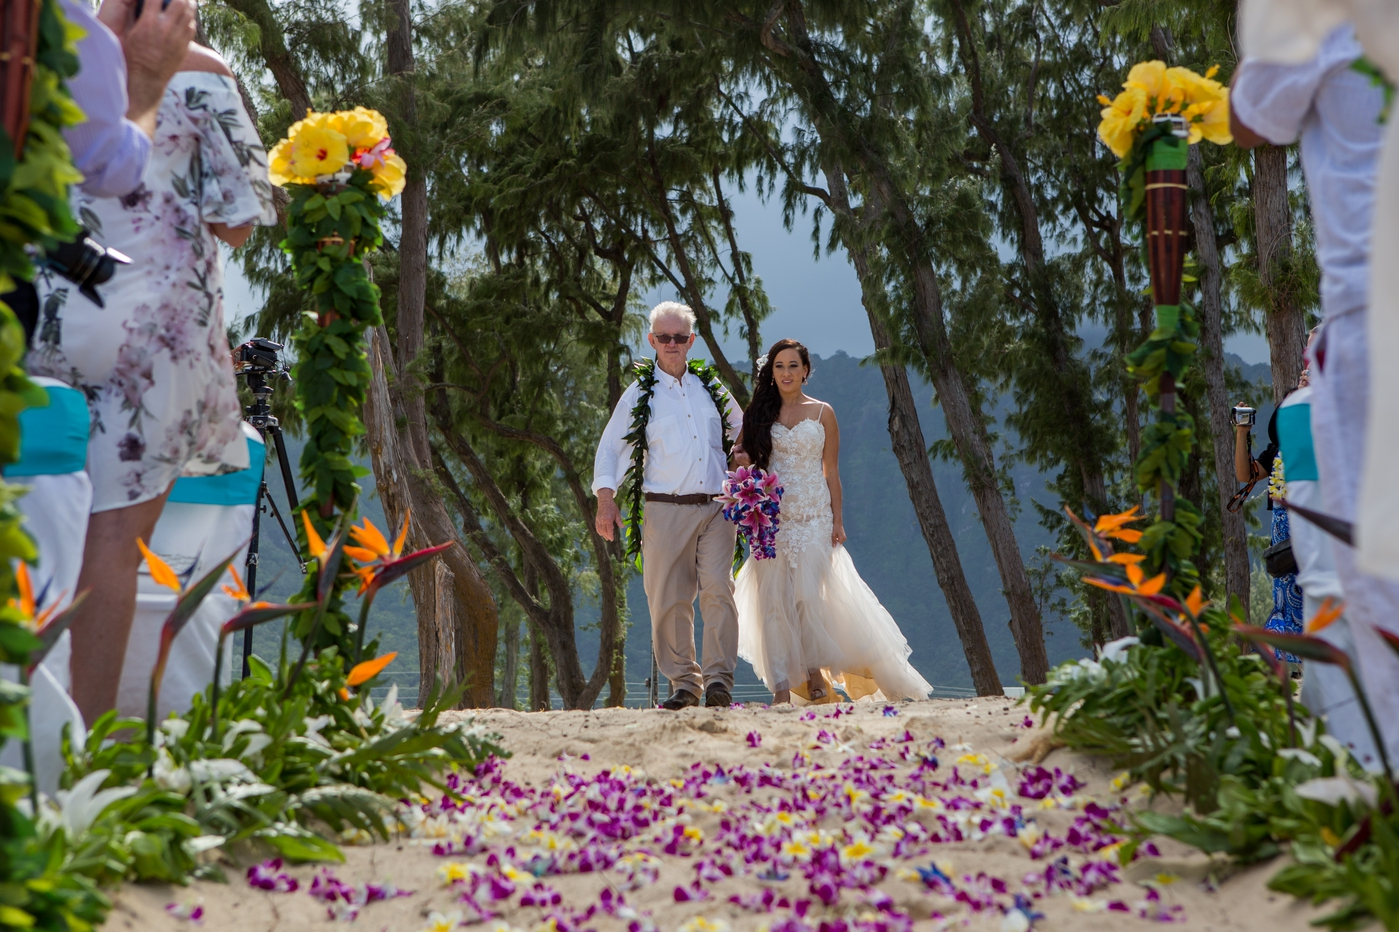 The bride is escorted down the pathway with her father to meet her husband to be